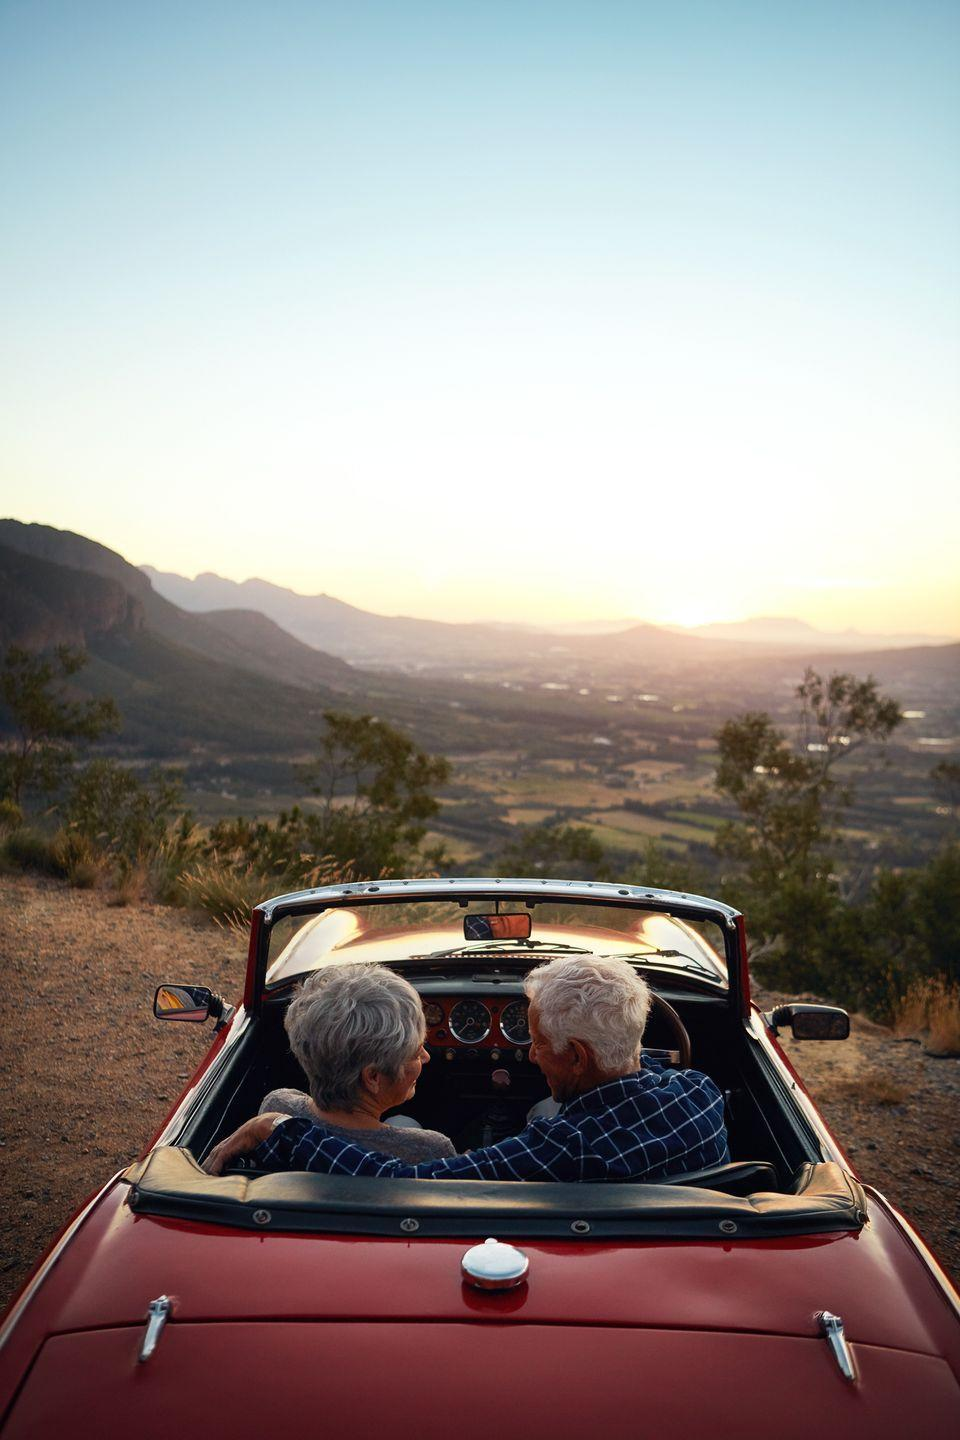 """<p>Because you're saving money by not traveling for your vacation, treat yourself to renting a car that you've always dreamed of for a few hours. A convertible is a great idea for a warm, sunny day to take a drive and watch the sunset.</p><p><a class=""""link rapid-noclick-resp"""" href=""""https://www.amazon.com/SOJOS-Sunglasses-Mirrored-SJ2057-Tortoise/dp/B07CGM6RG2/?tag=syn-yahoo-20&ascsubtag=%5Bartid%7C10050.g.805%5Bsrc%7Cyahoo-us"""" rel=""""nofollow noopener"""" target=""""_blank"""" data-ylk=""""slk:SHOP SUNGLASSES"""">SHOP SUNGLASSES</a> </p>"""